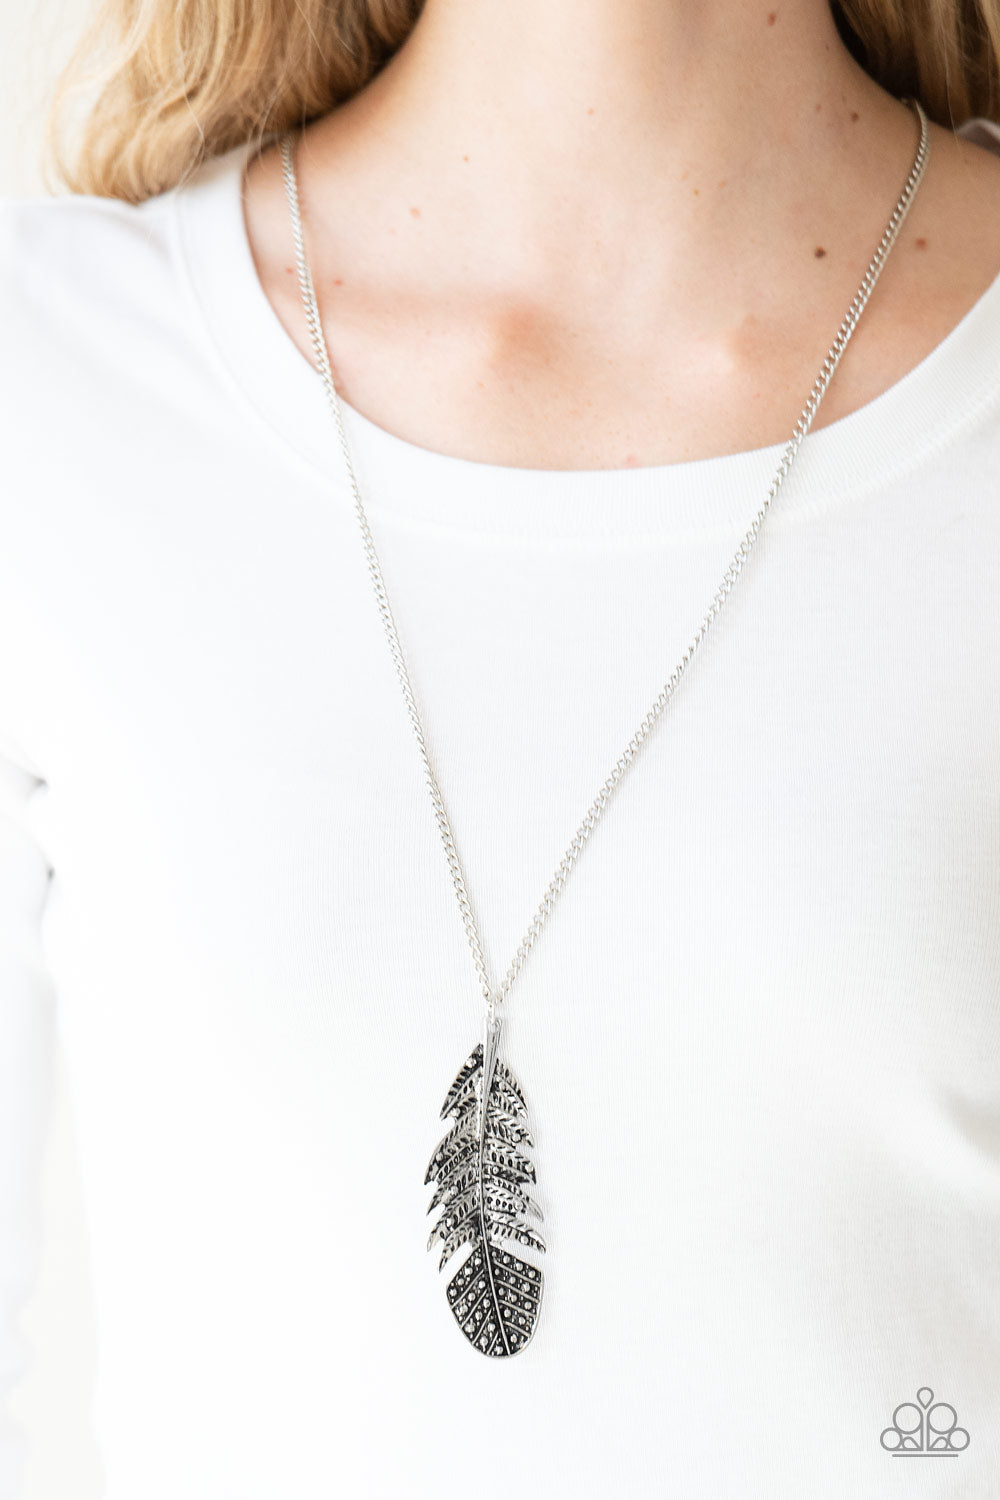 Free Bird - silver - Paparazzi necklace